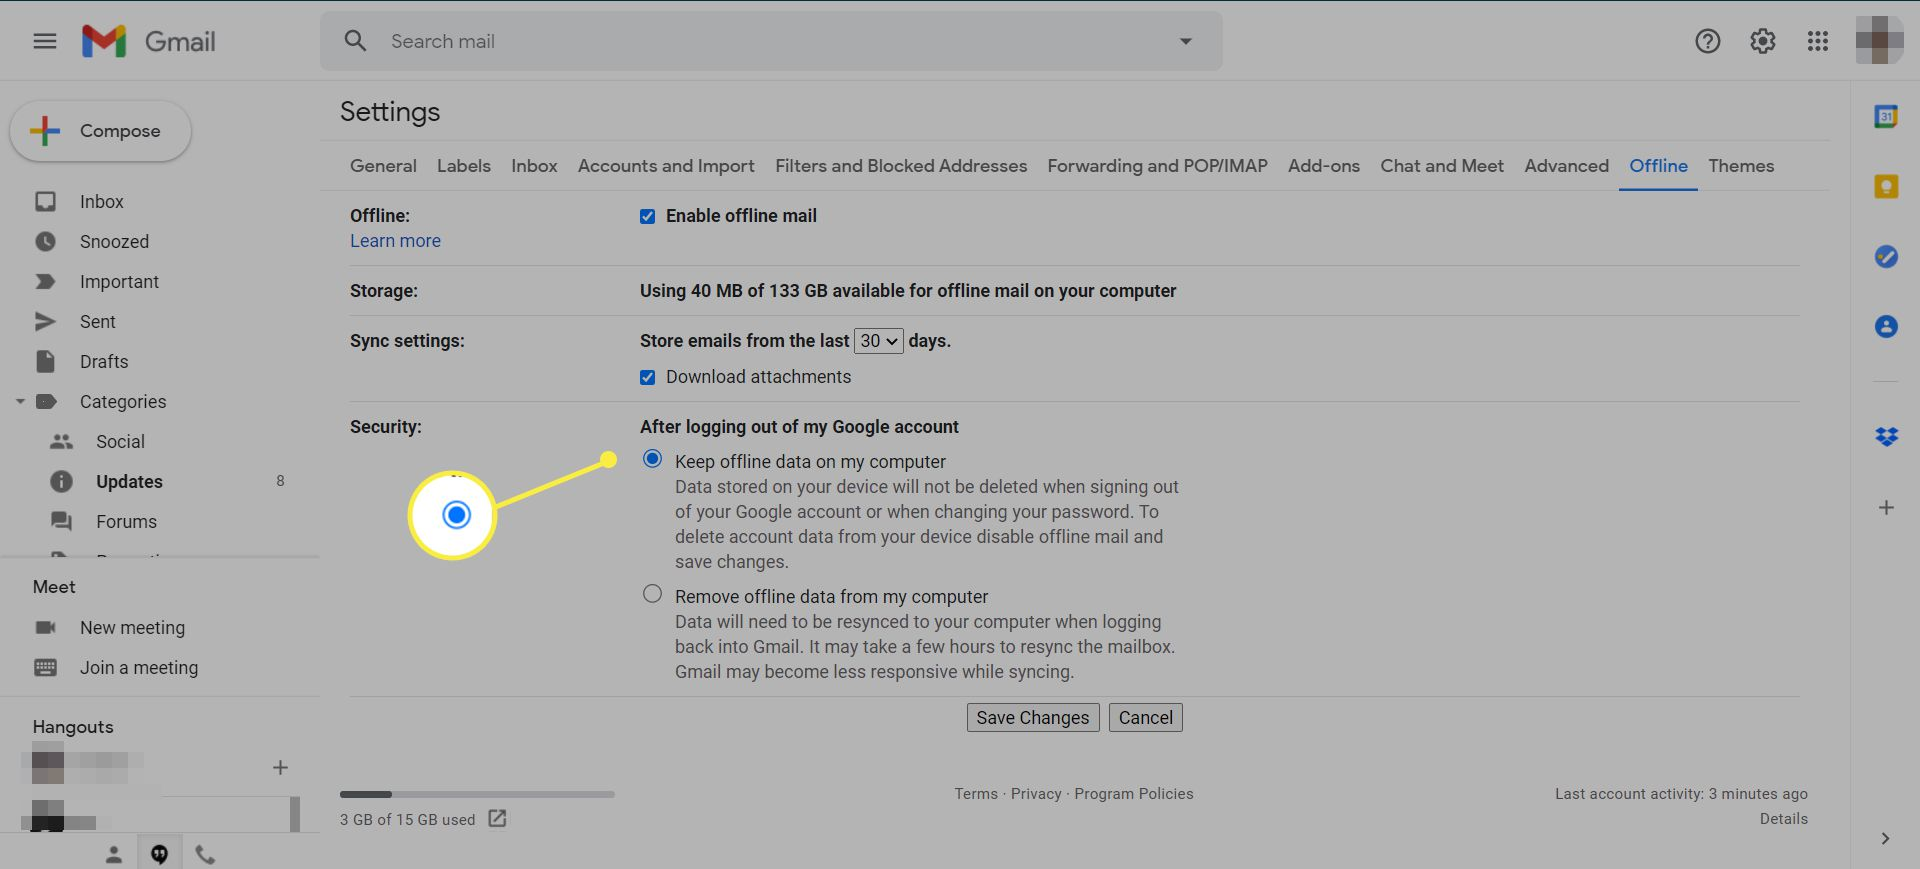 Gmail offline settings with the 'Keep offline data on my computer' radio button highlighted